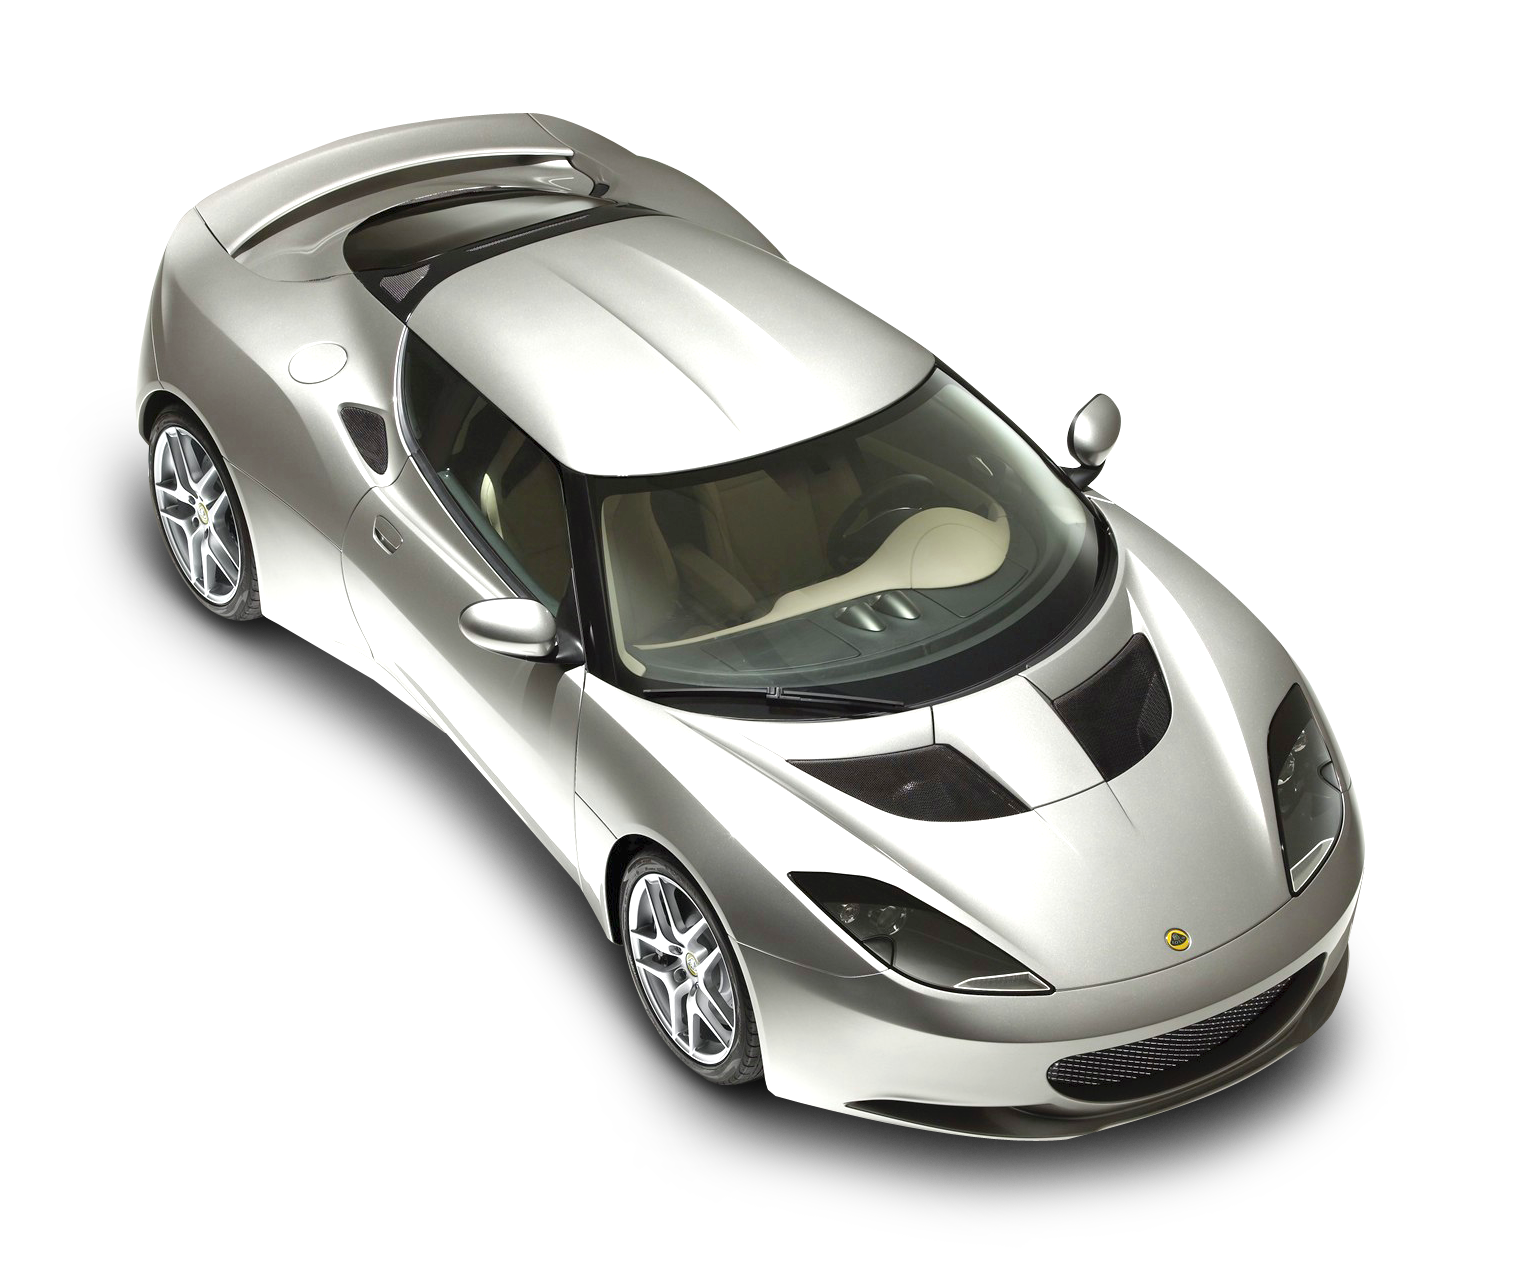 Lotus Evora Top View Car PNG Image - PurePNG